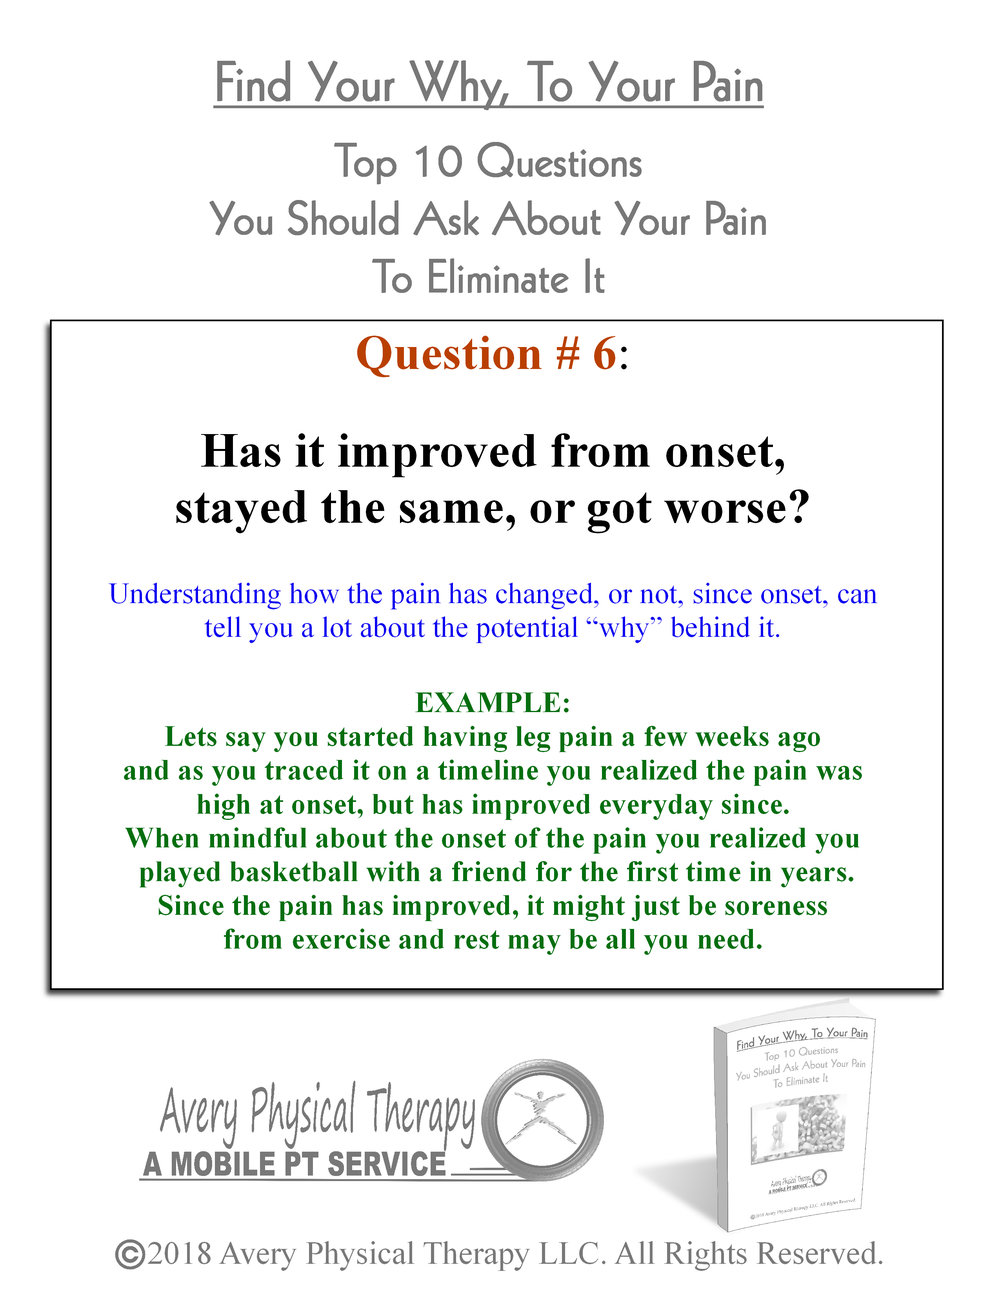 Top 10 Pain Questions 4-6G.JPG